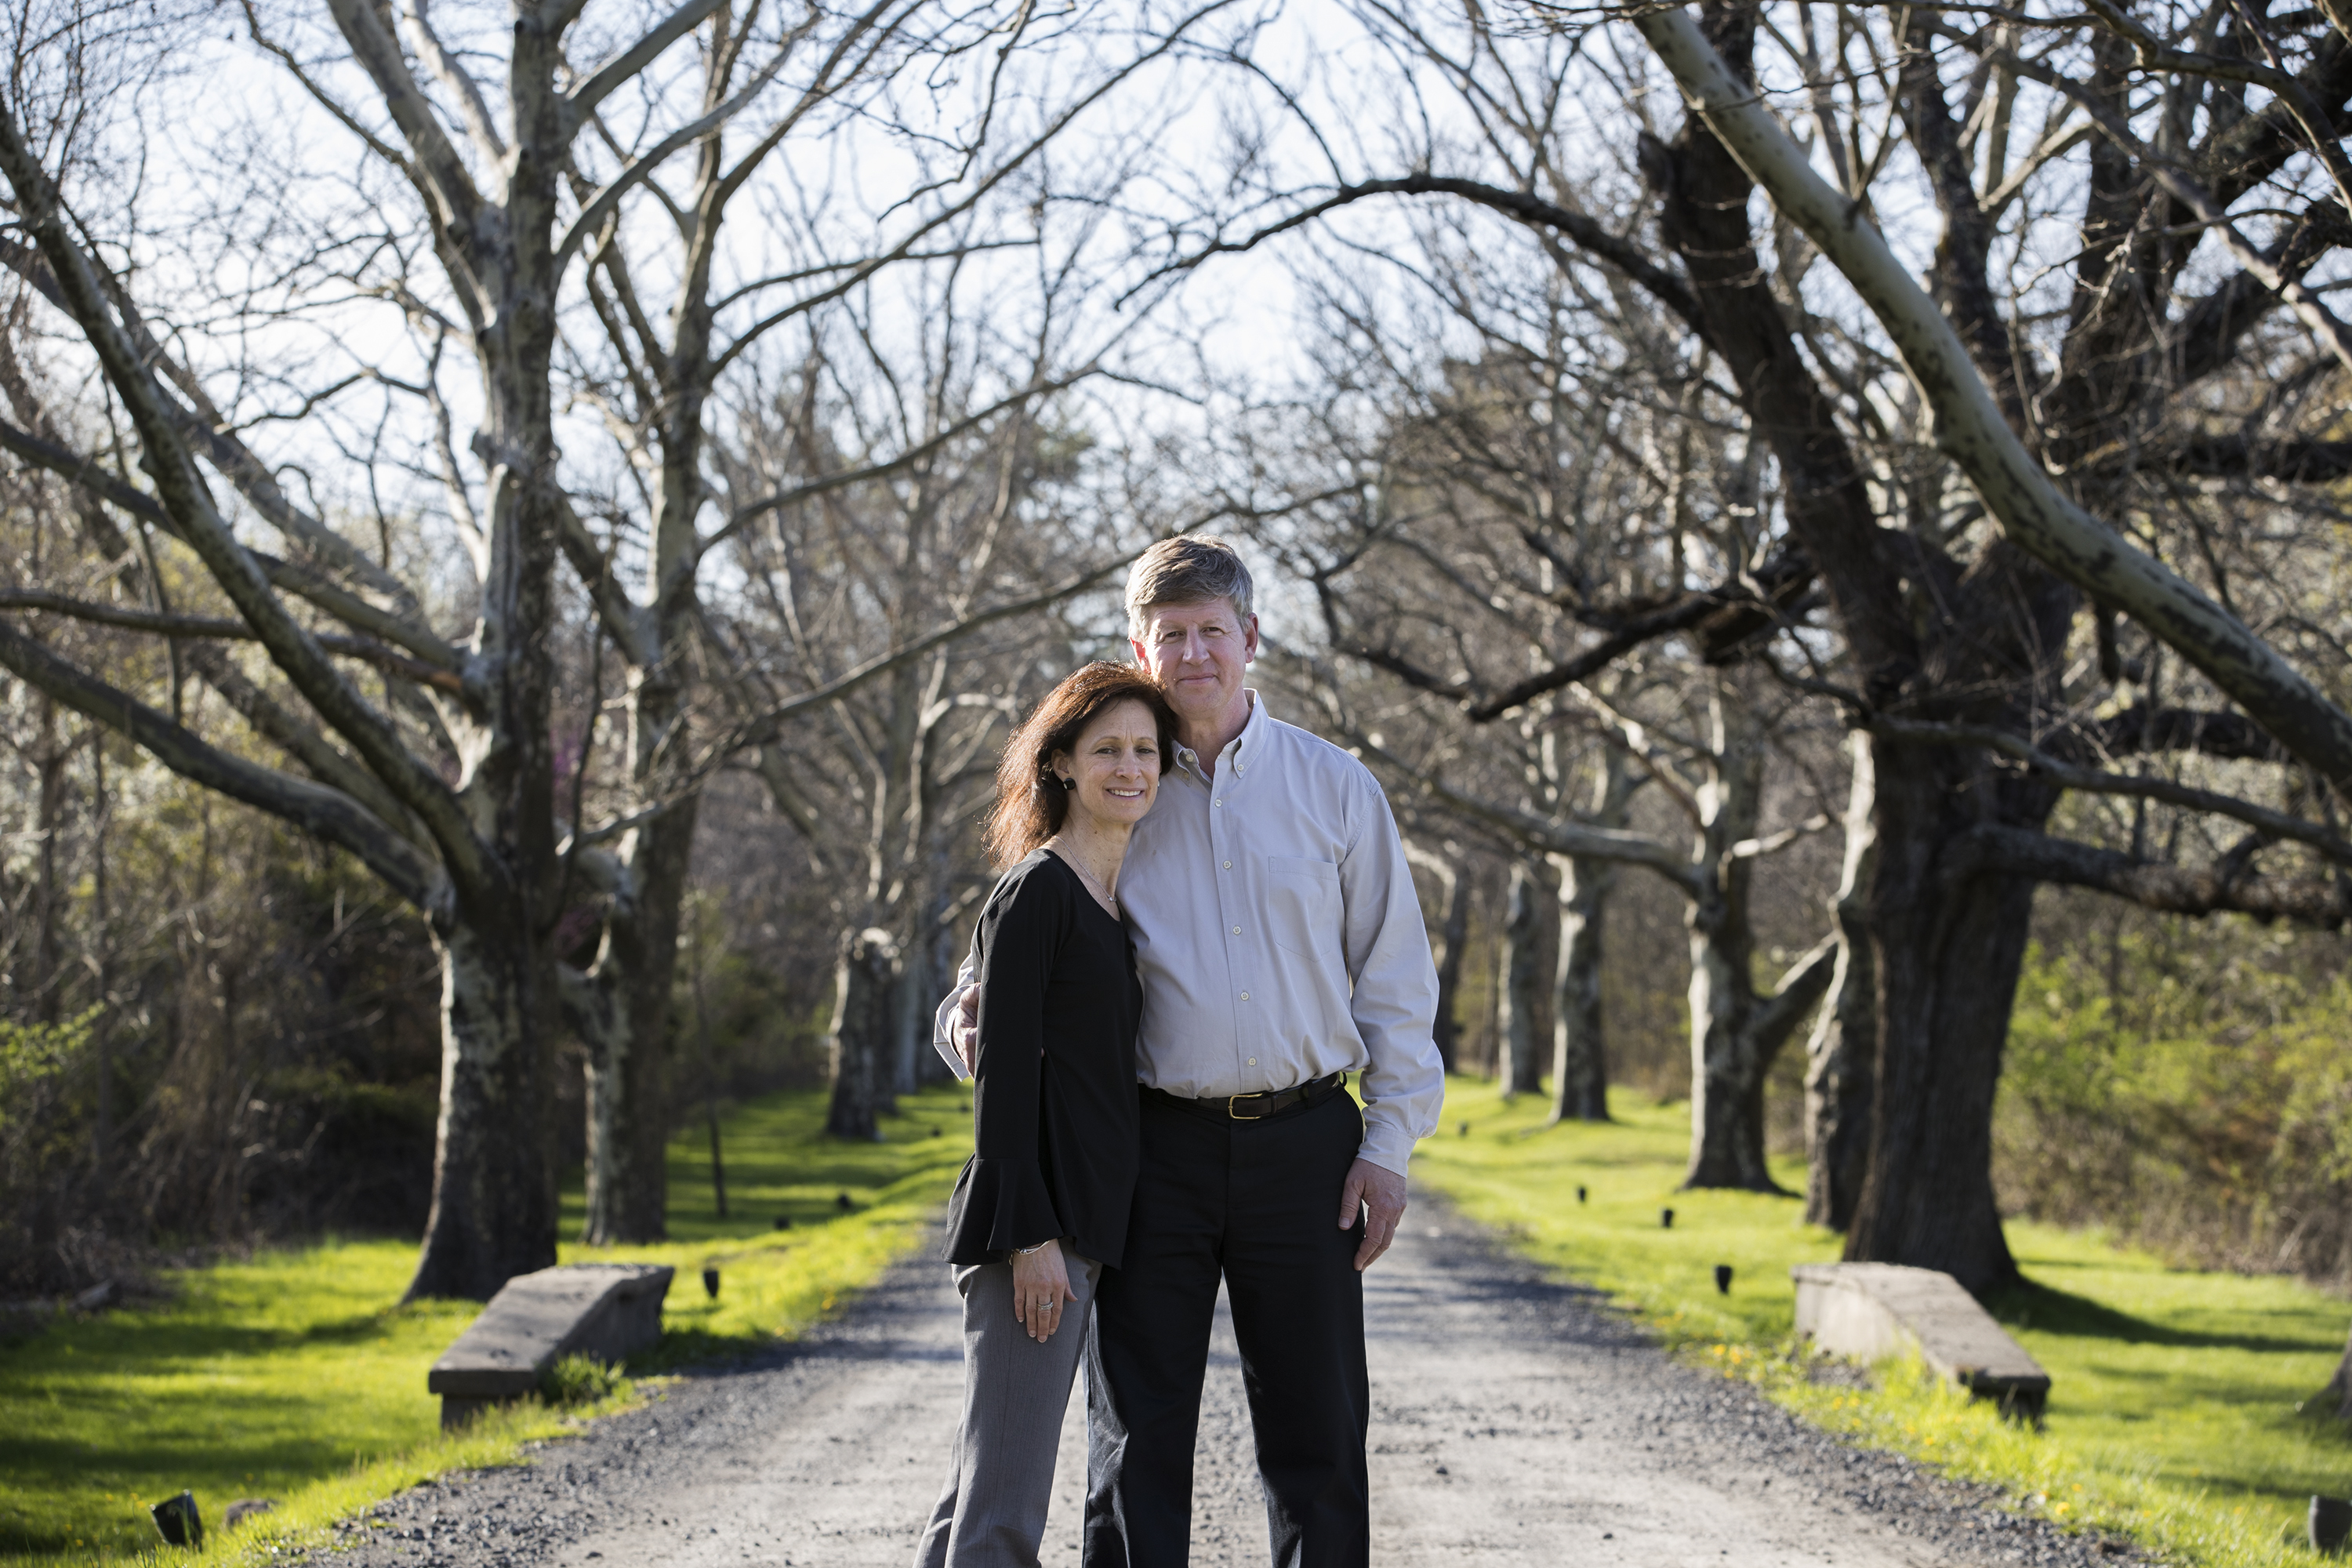 Owners Deena and Mark Frank along the tree-lined driveway at Barley Sheaf Farm.